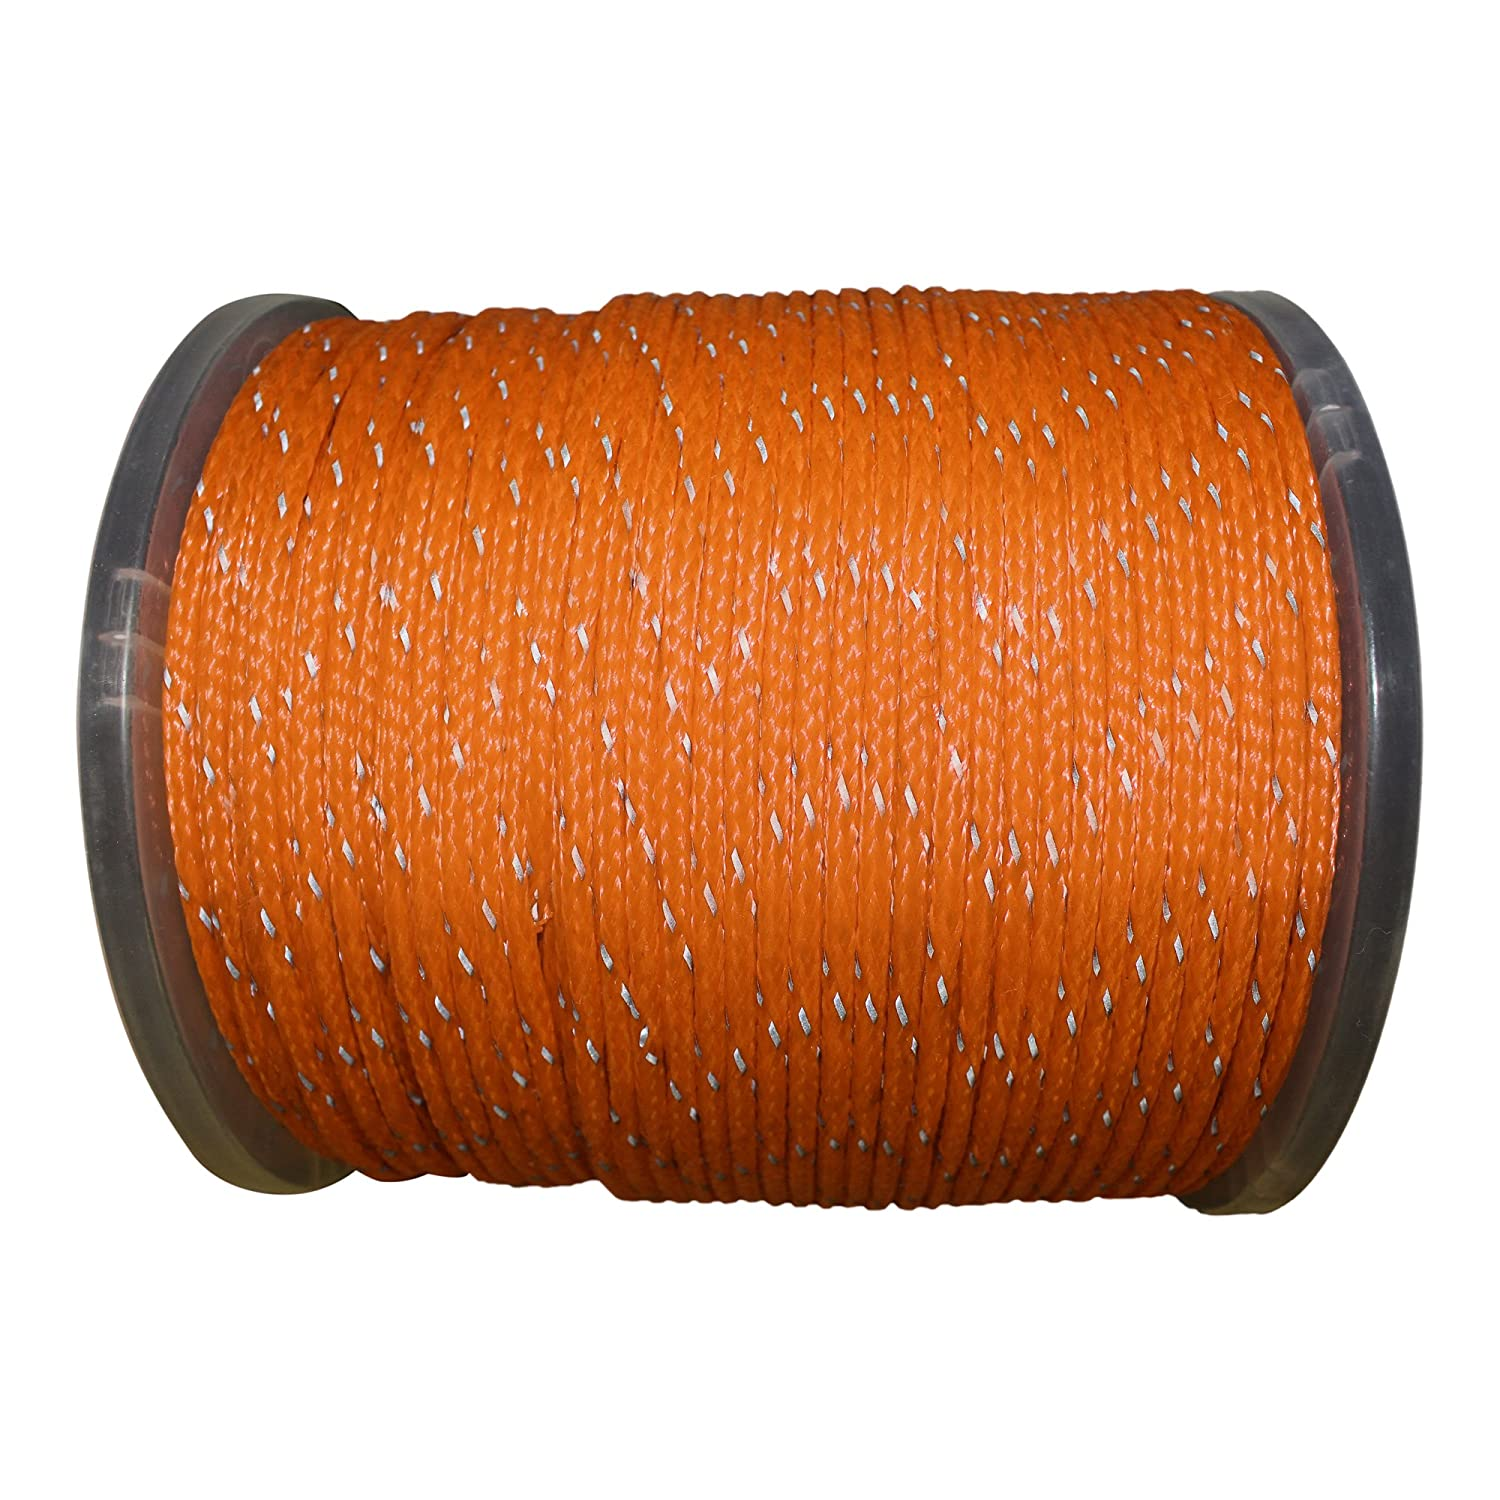 Hollow Braid Polyethylene Rope Outdoor Concerts Ski Slopes Path Marking Crafting 100/% High-Grade Polyethylene Cord with Reflective Tracers 1//4 inch 1,000 feet - Spool - Orange - SGT KNOTS